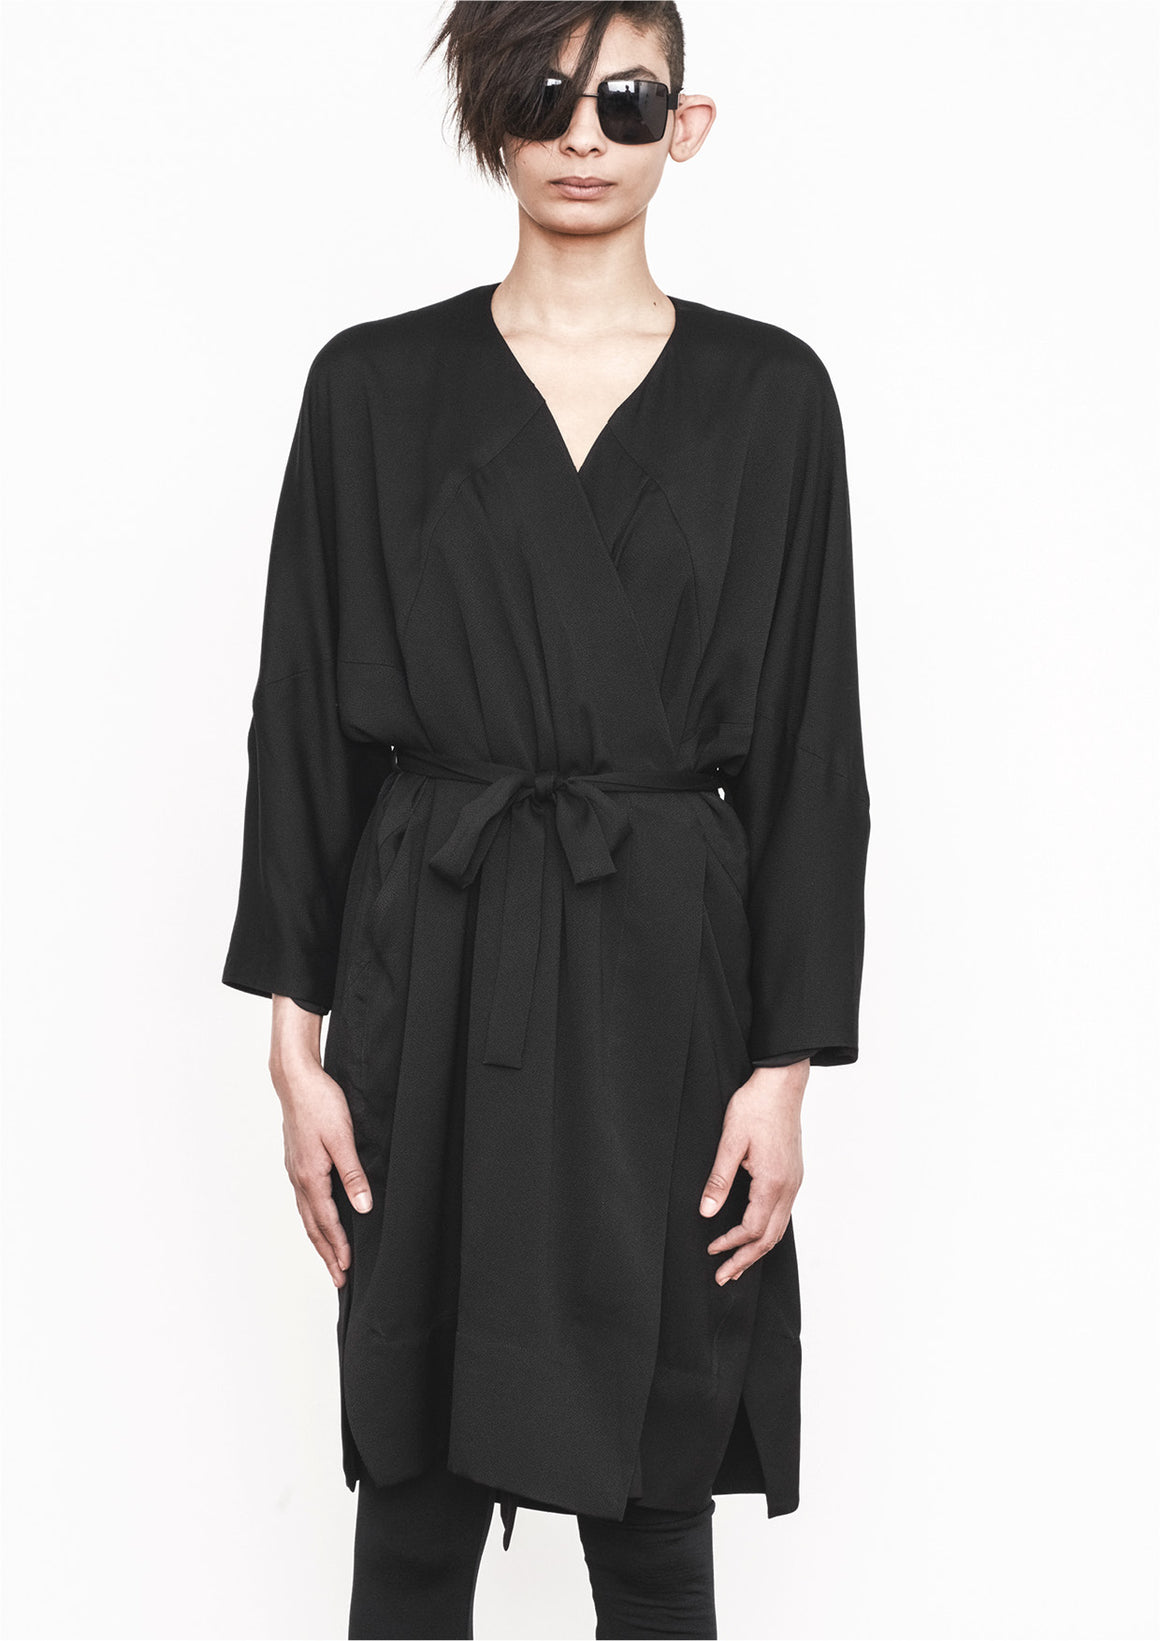 CARDIGAN - BLACK DRAPING